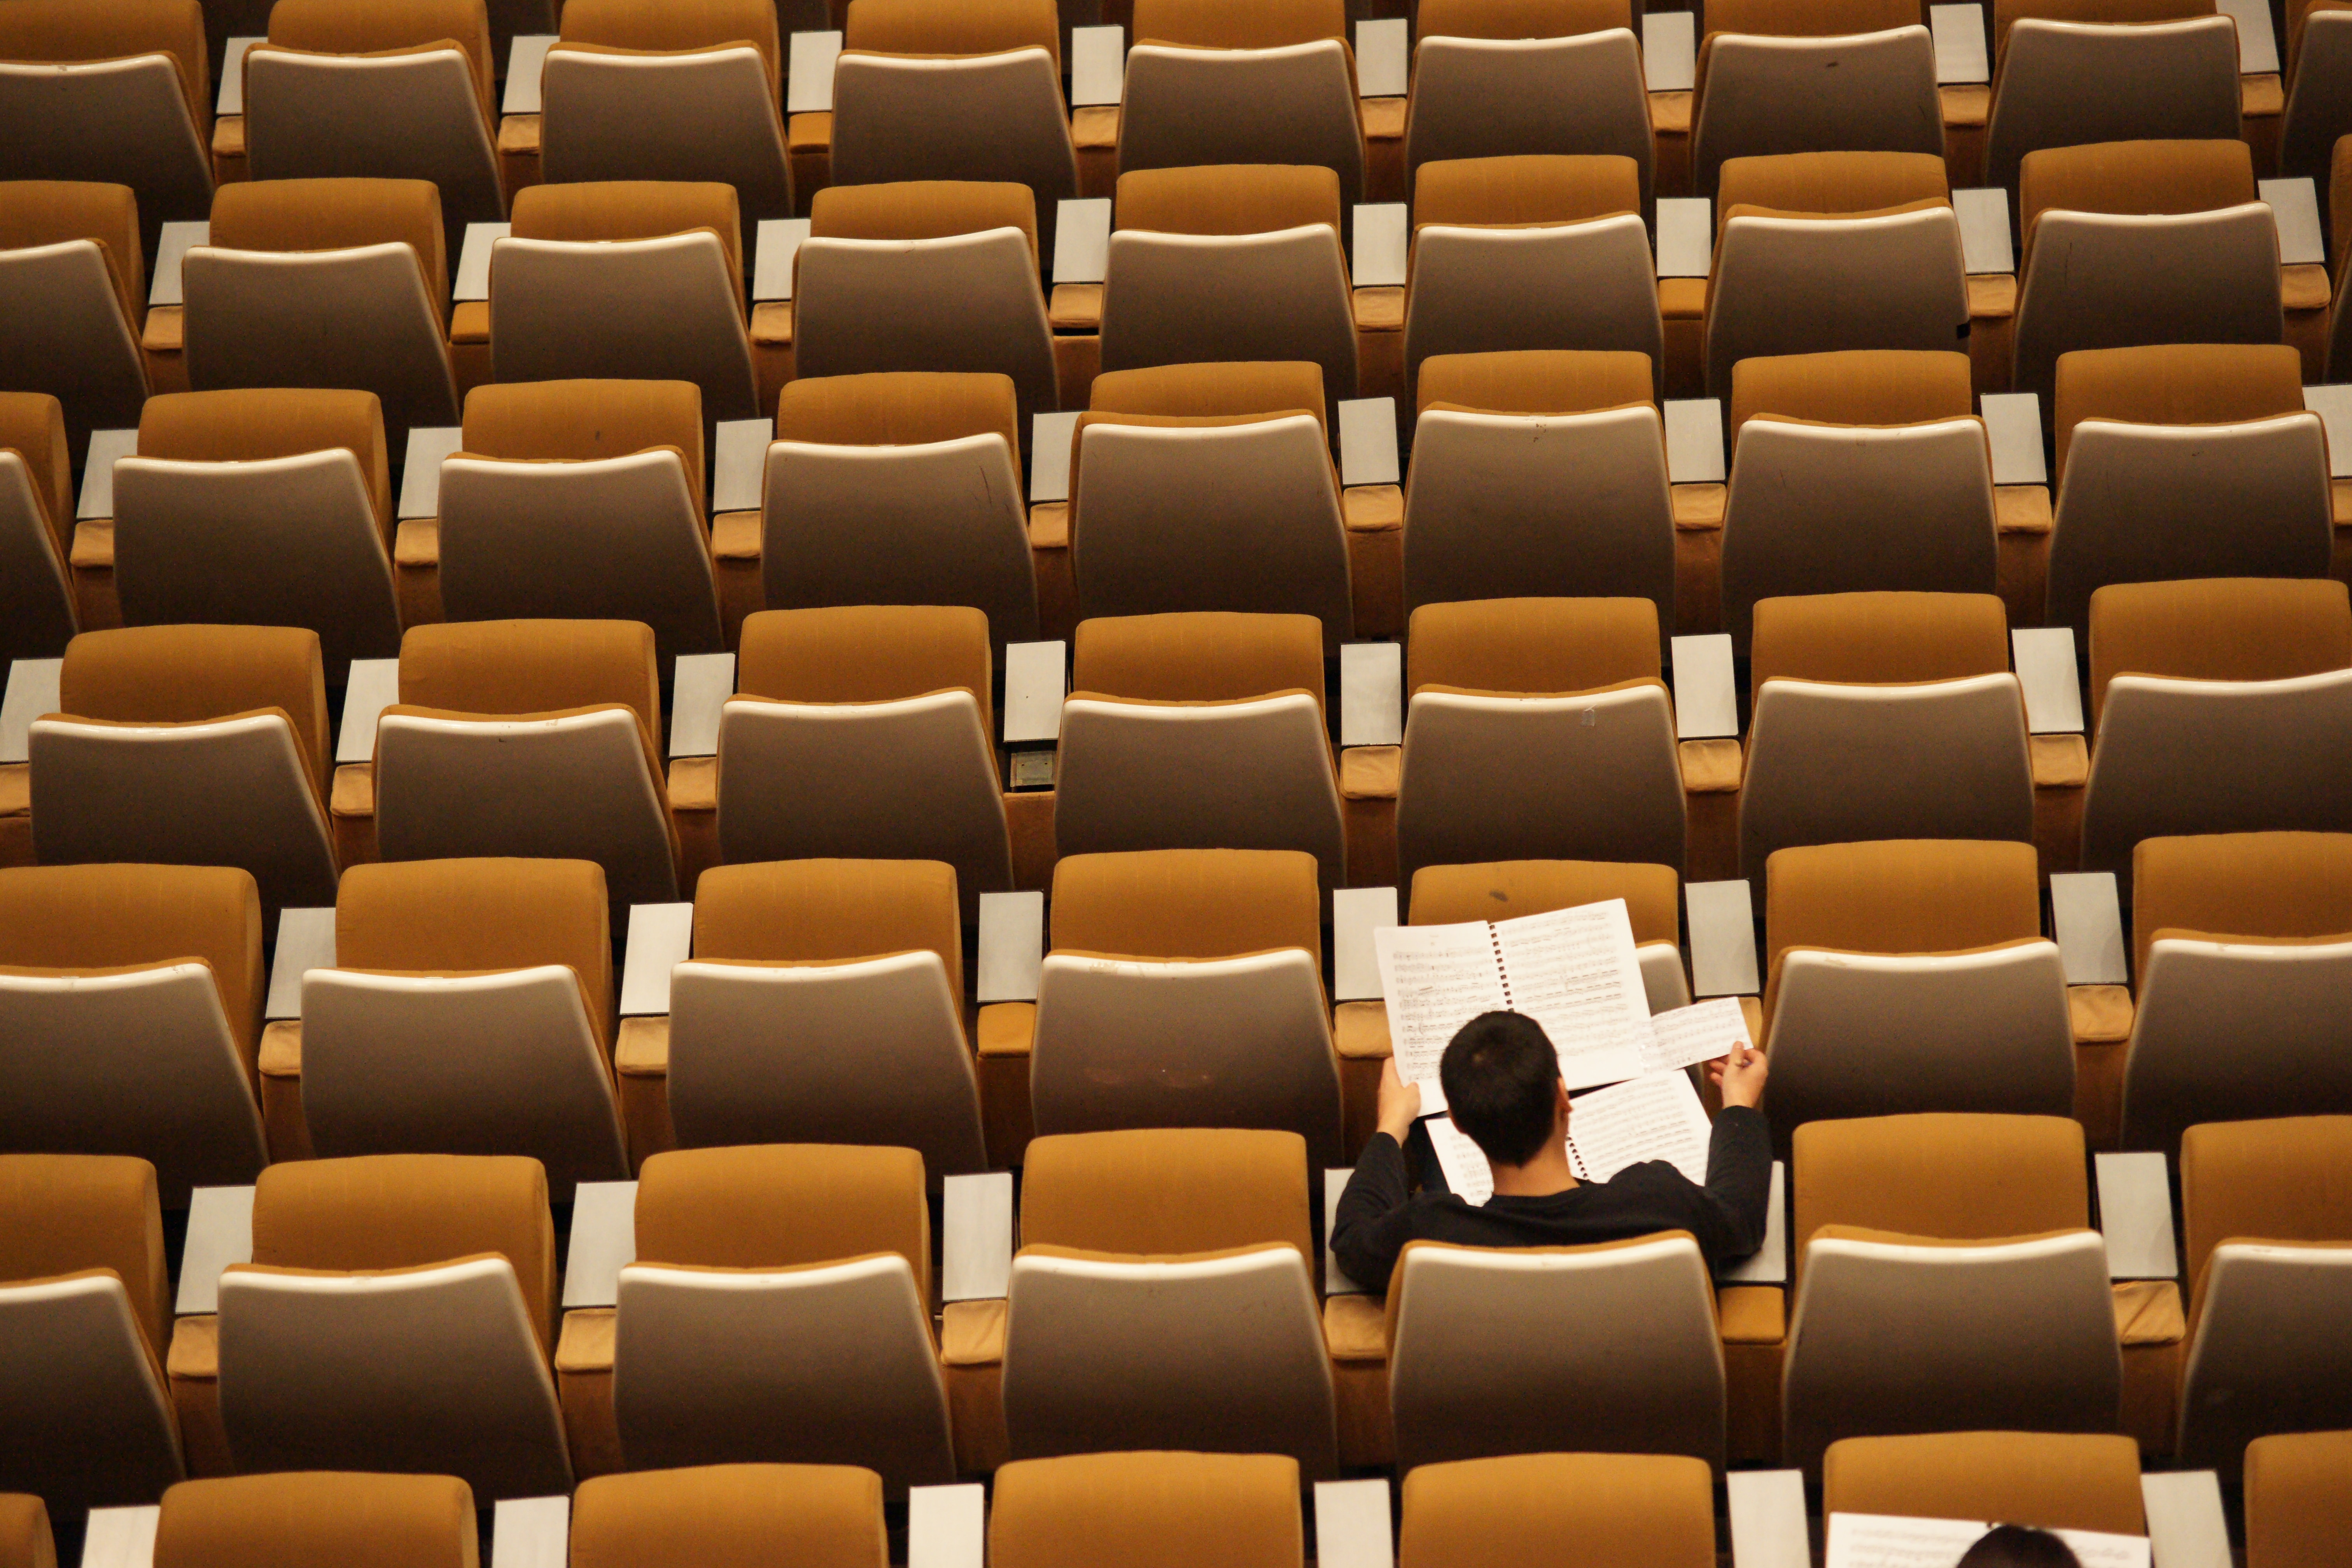 photo os a man in an auditorium reading a paper